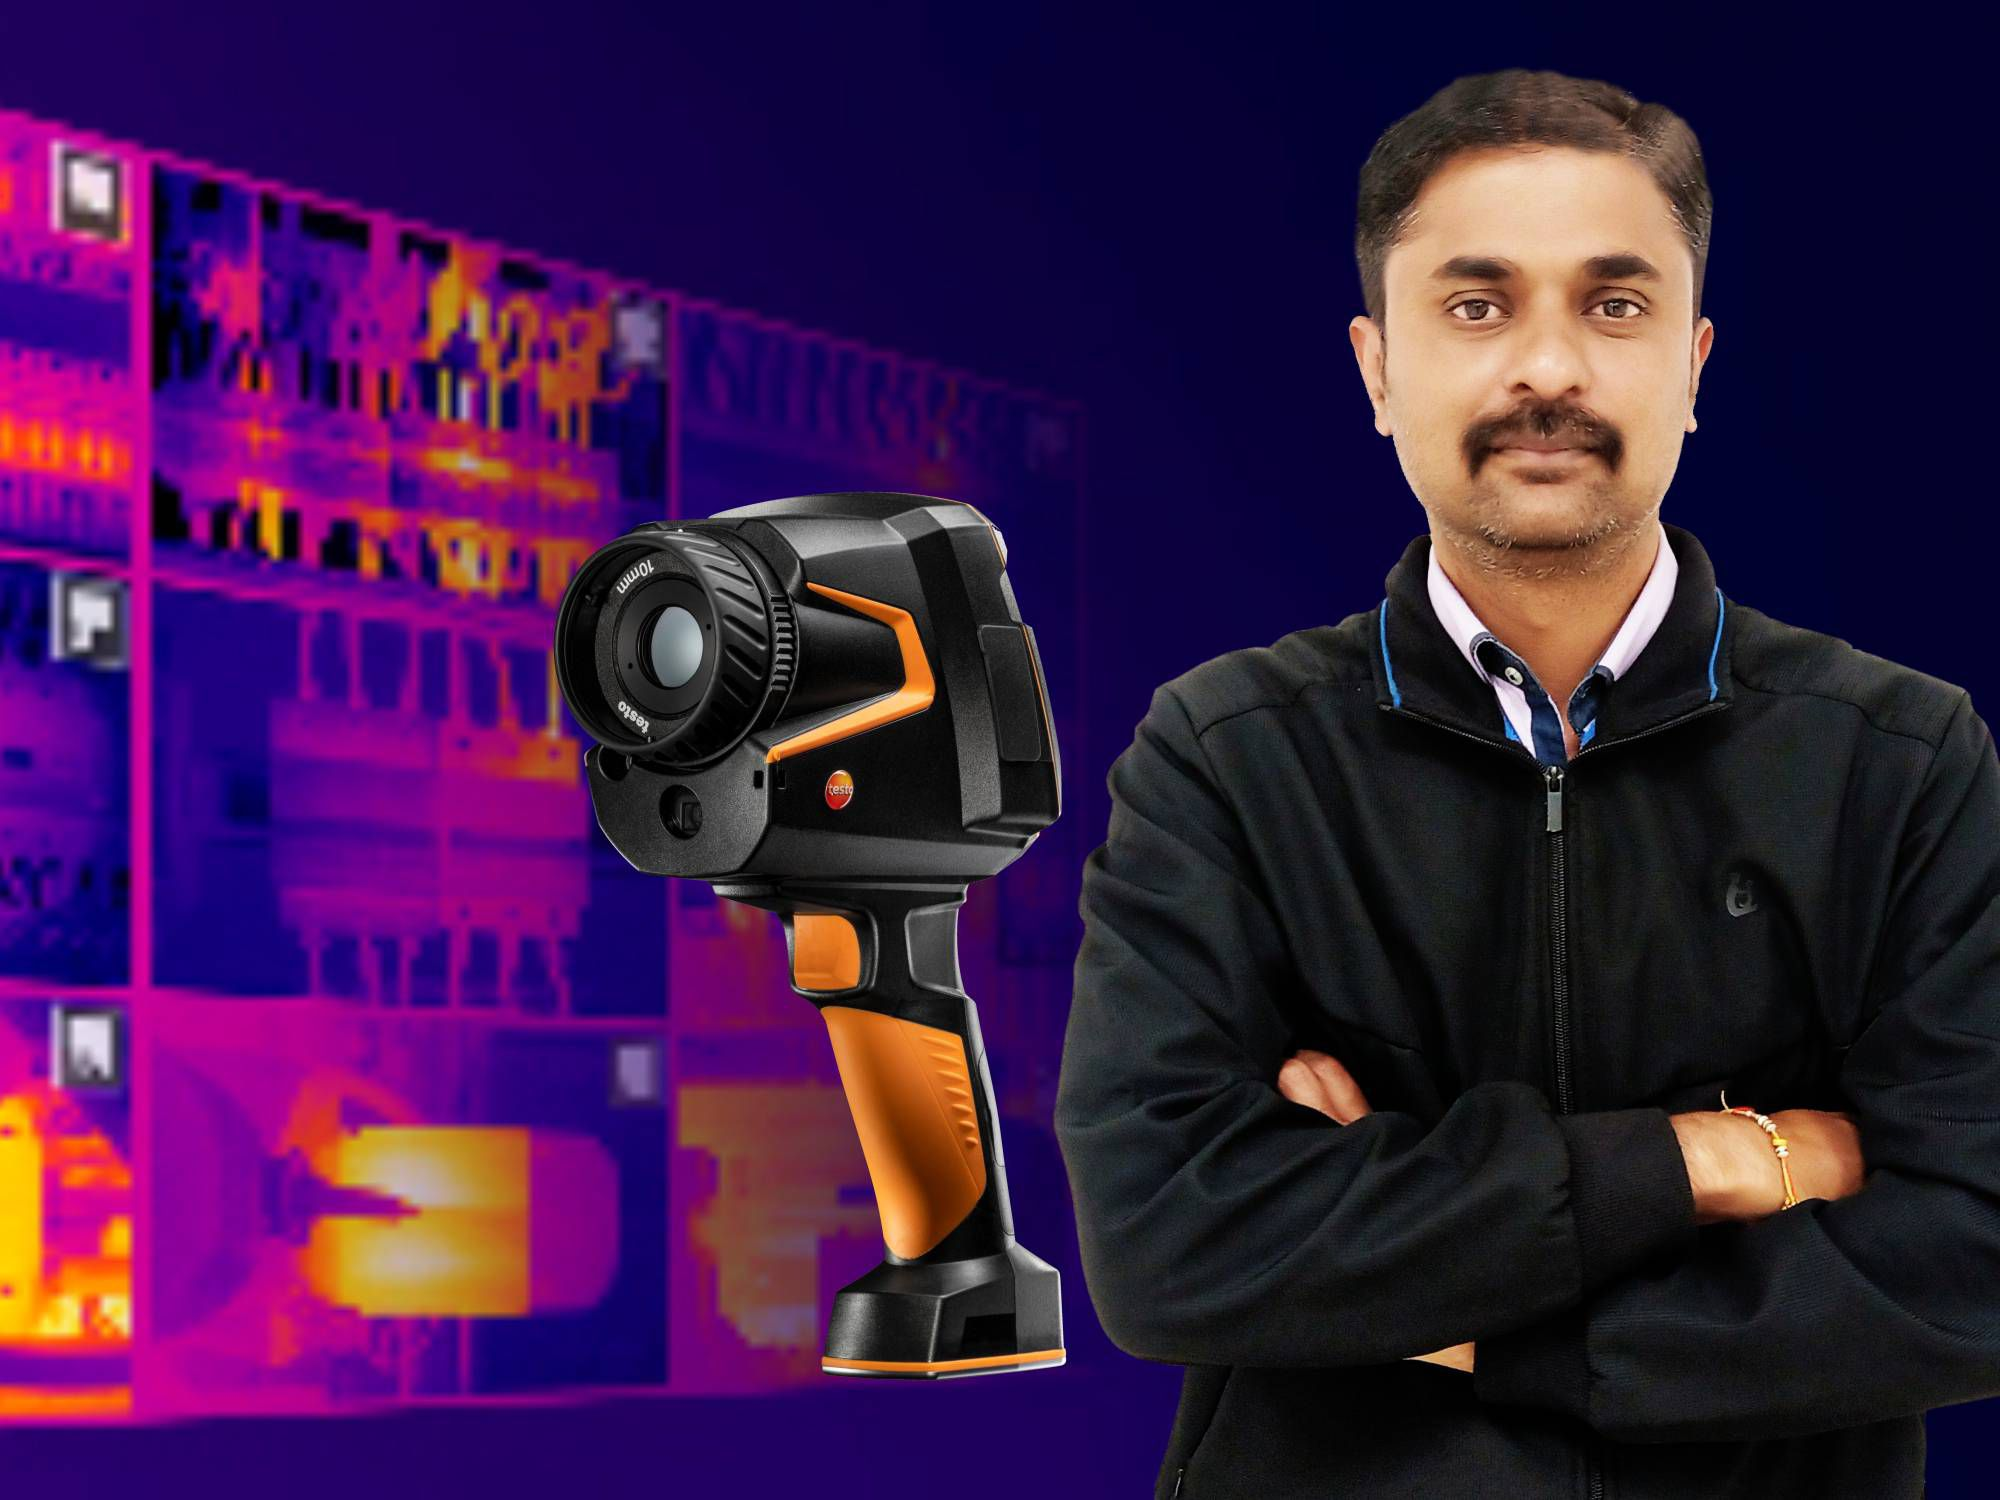 The New Thermal Imager testo 883